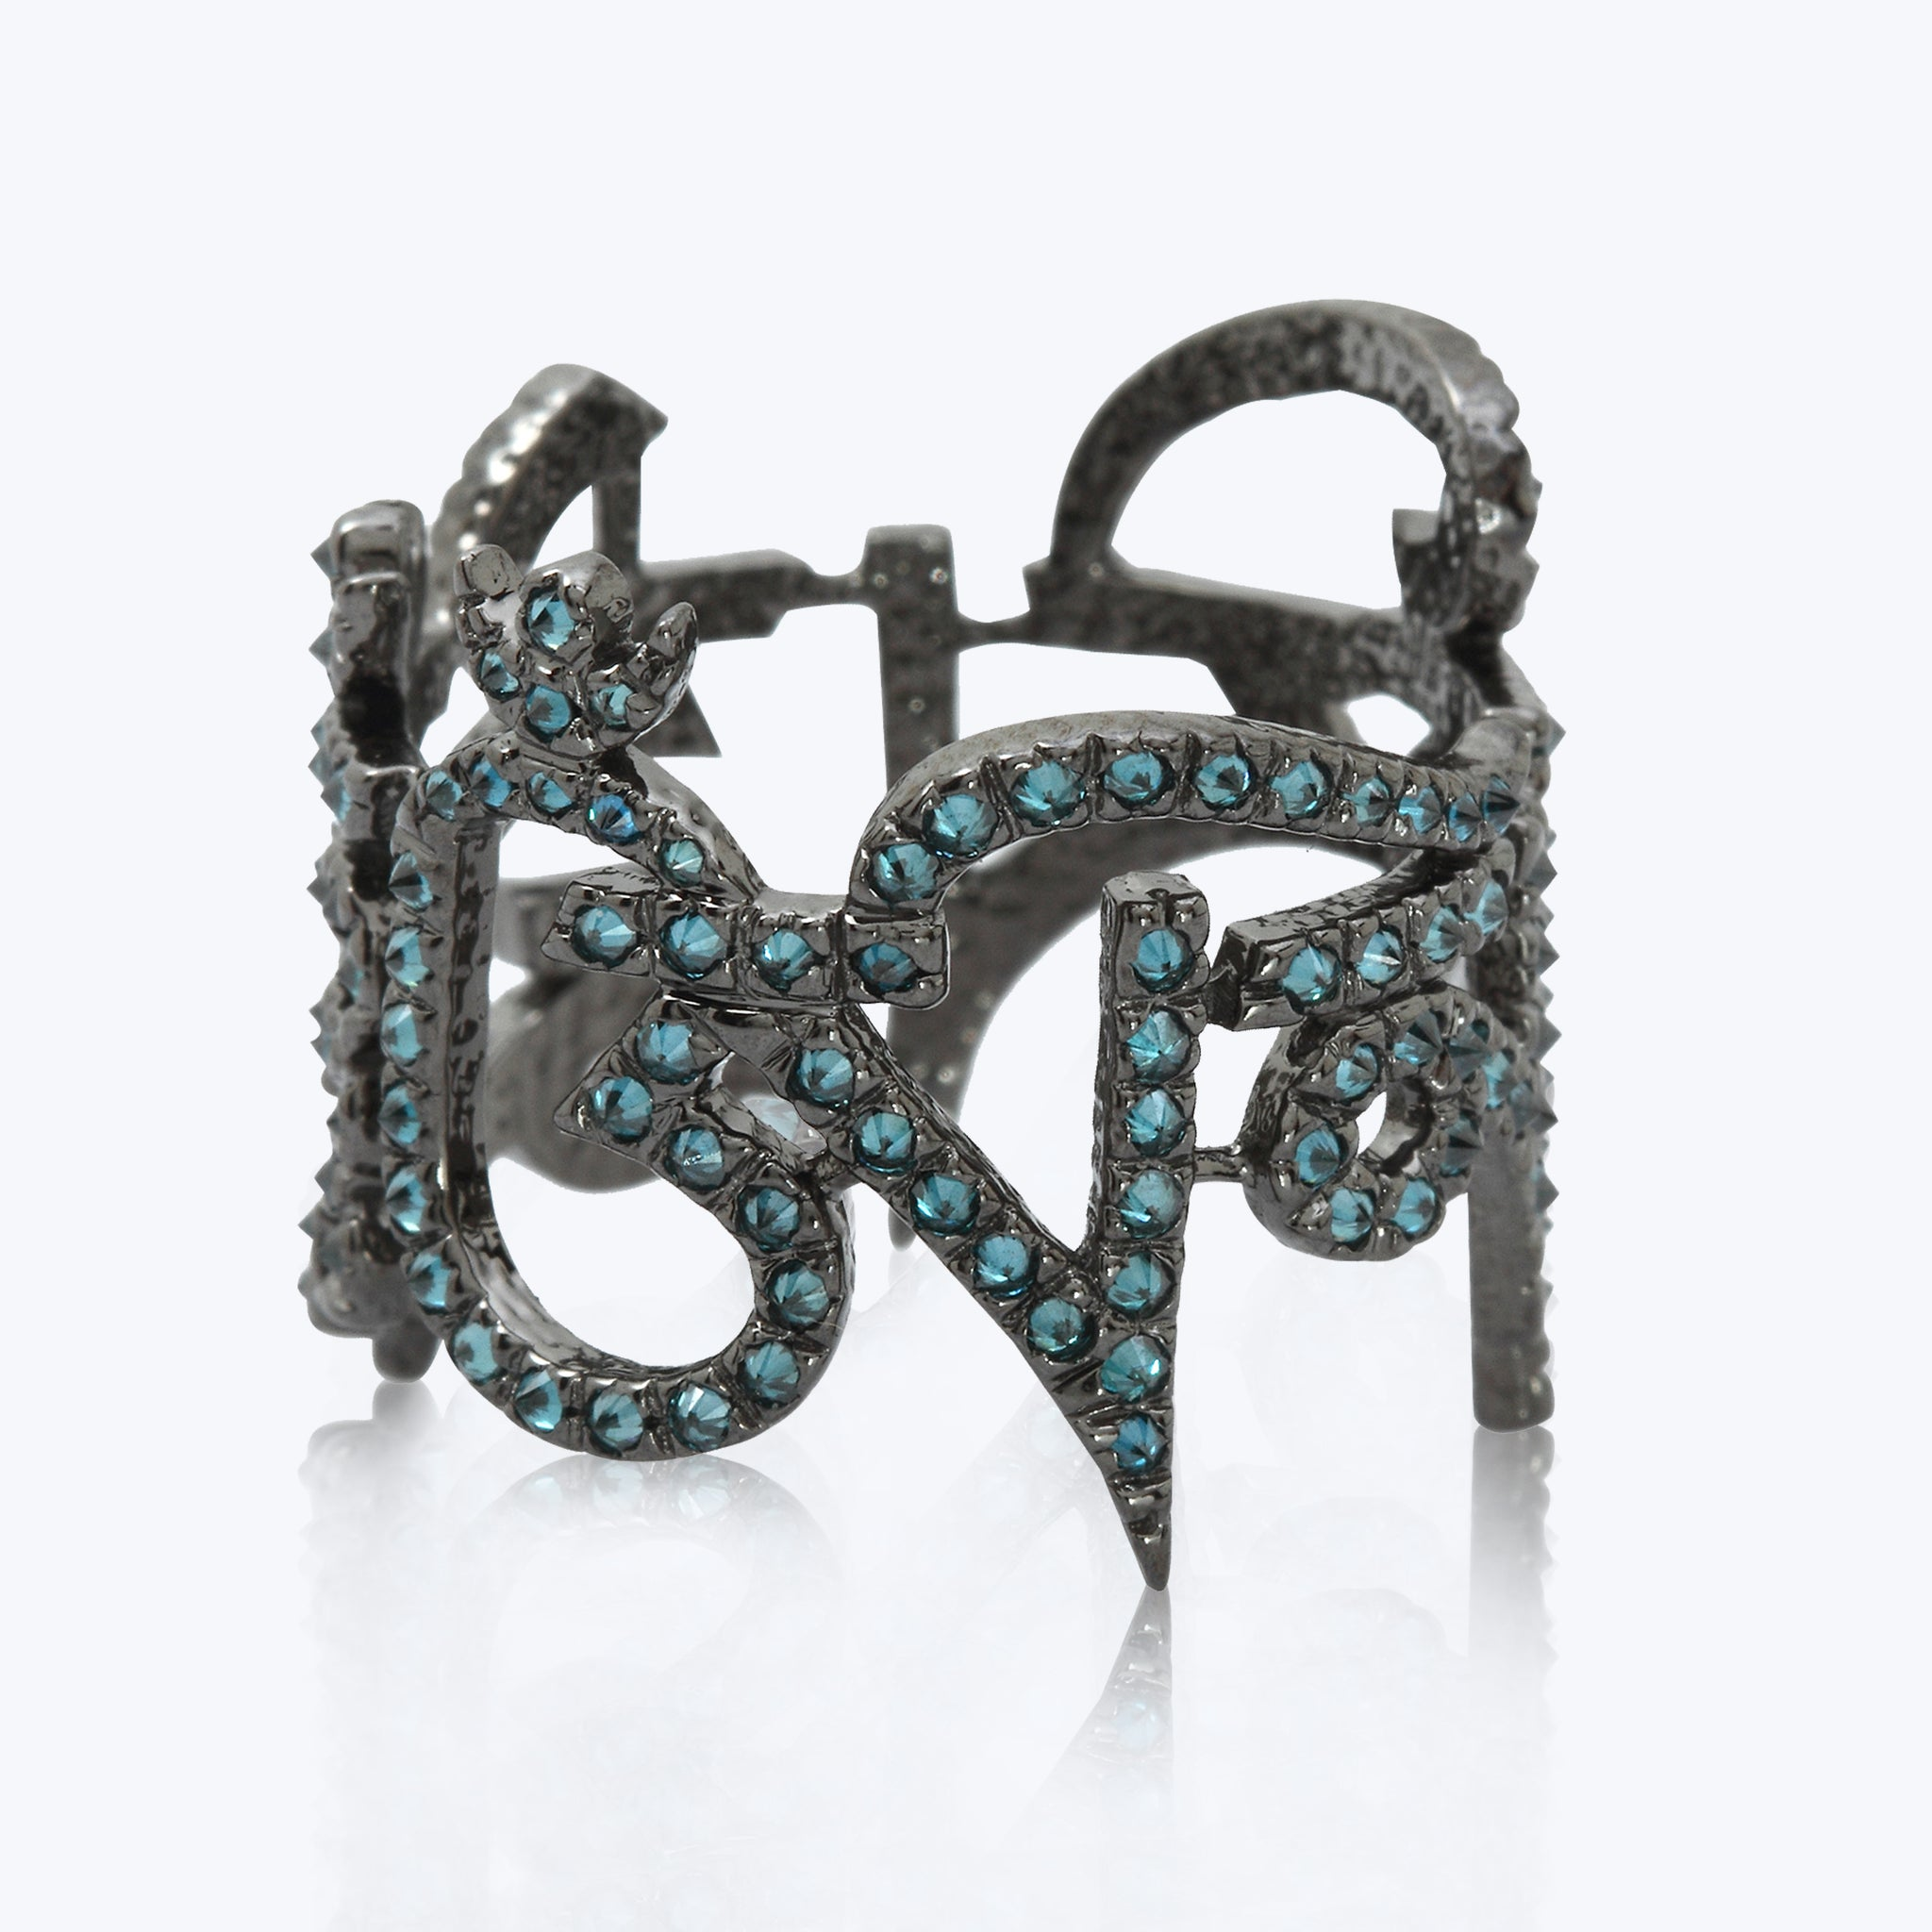 Tibetian Mantra Ring with Blue diamonds